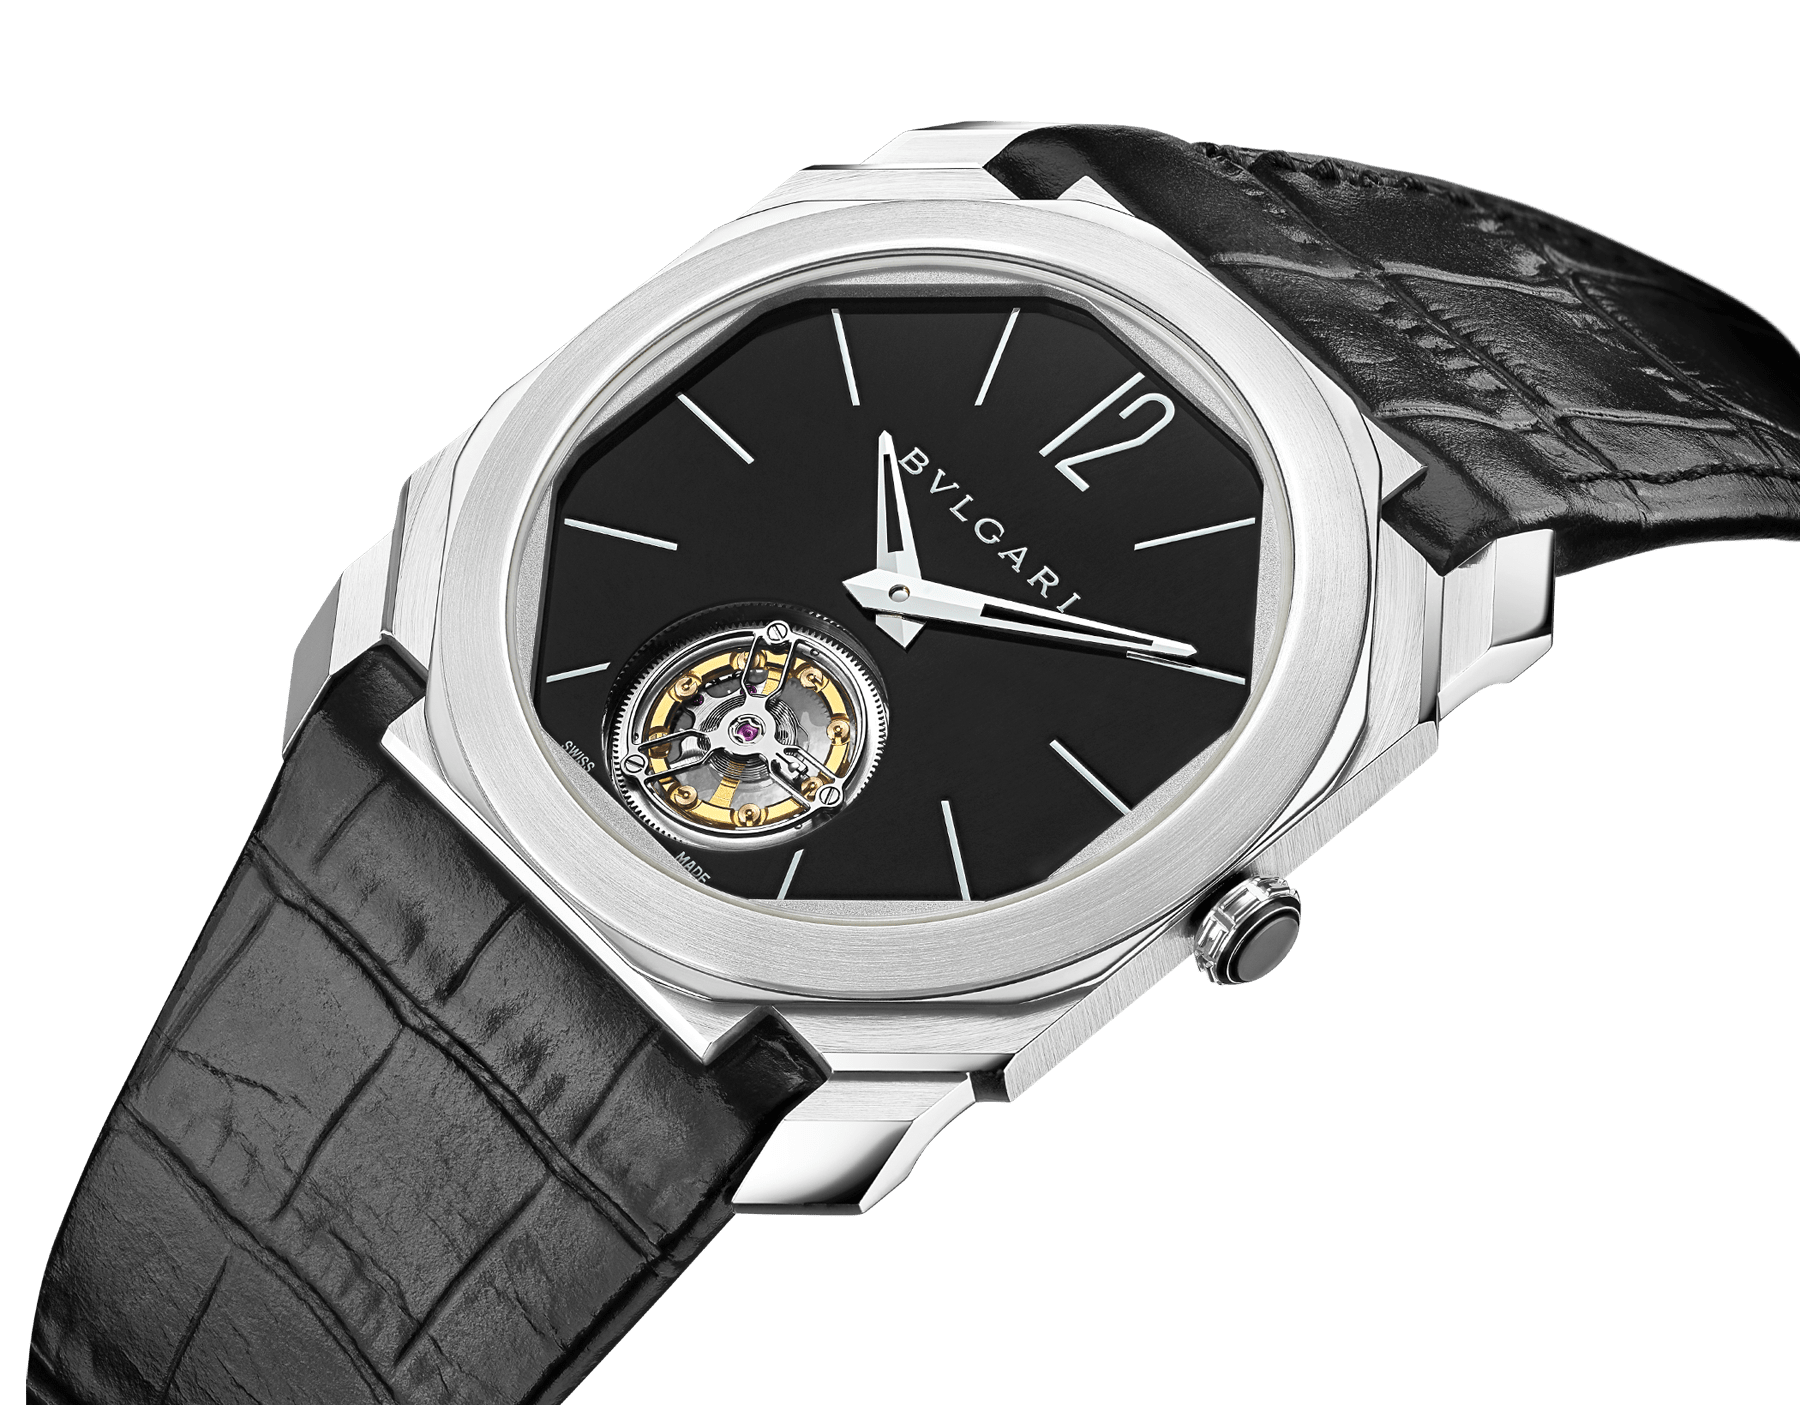 Octo Finissimo Tourbillon watch with extra thin mechanical manufacture movement and manual winding, platinum case, black lacquered dial and black alligator bracelet. 102138 image 2